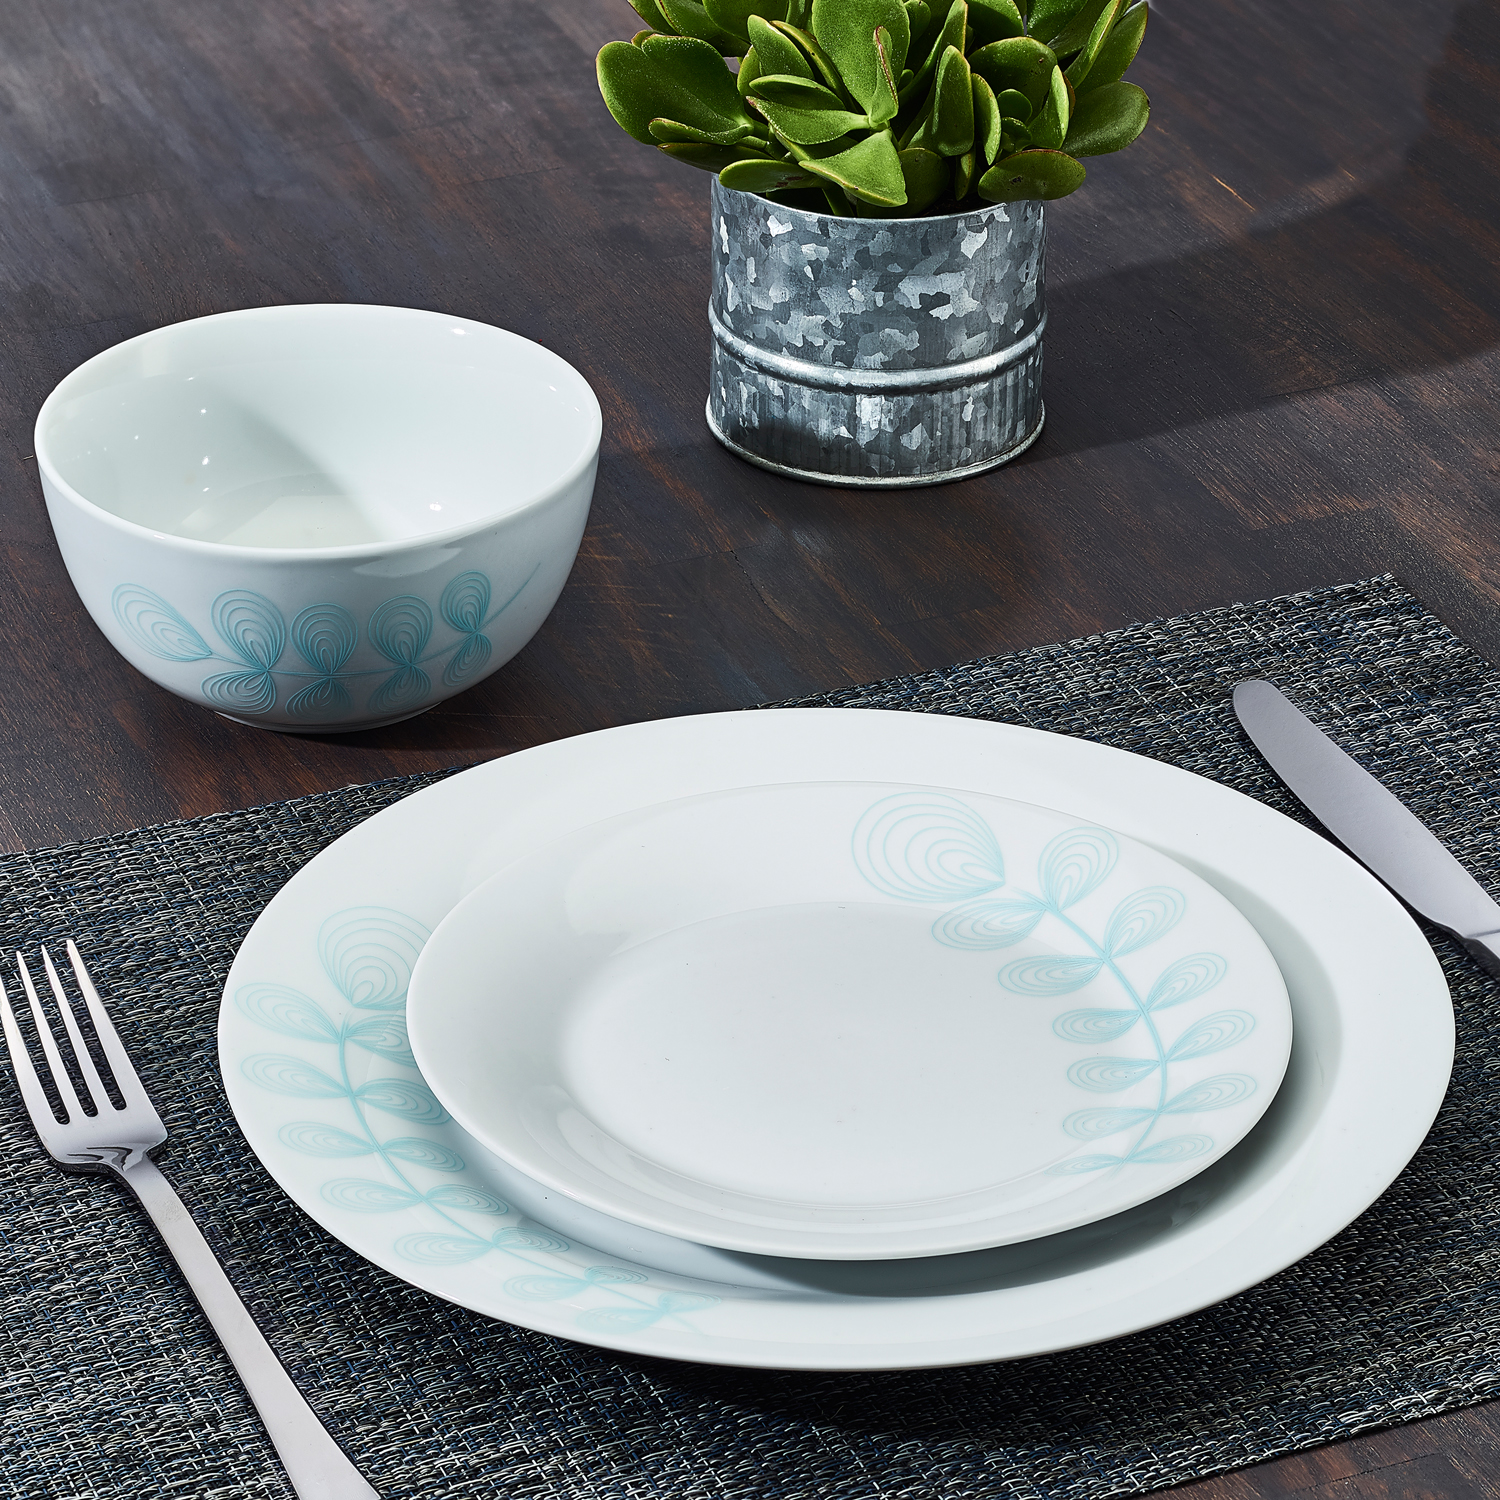 12-Piece April Floral Collection Porcelain Dinnerware Set, Blue